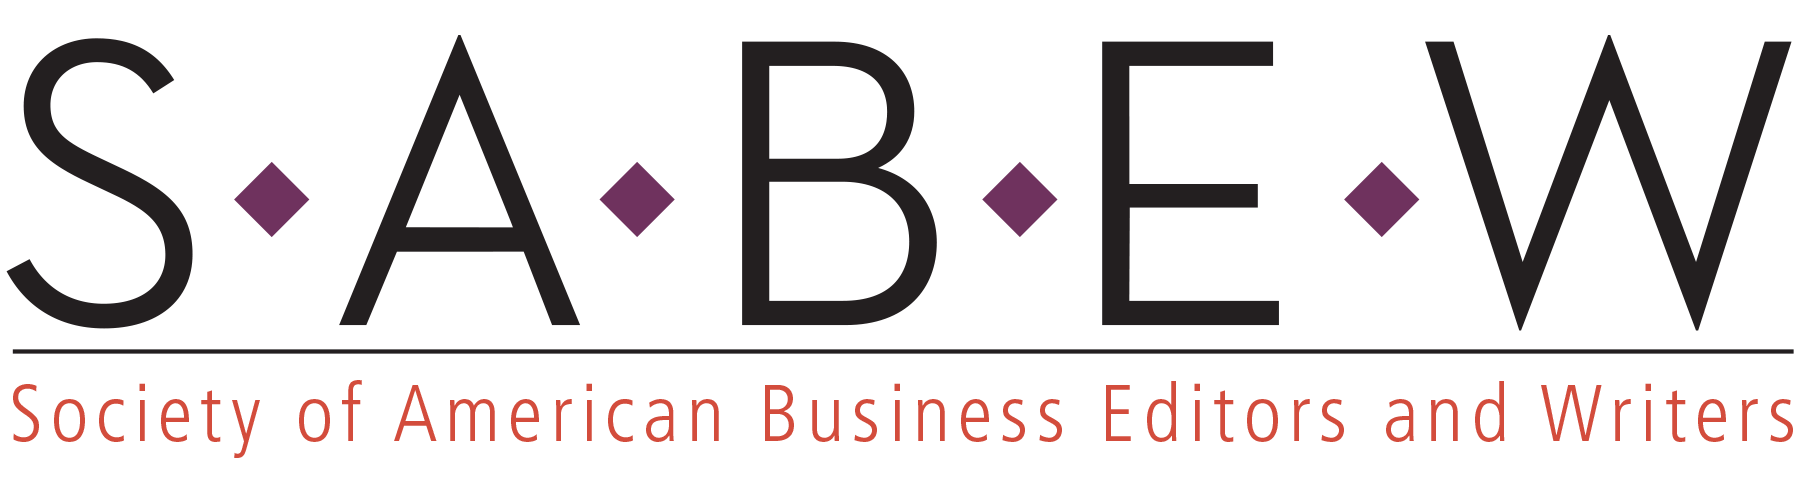 Society of American Business Editors and Writers (SABEW)